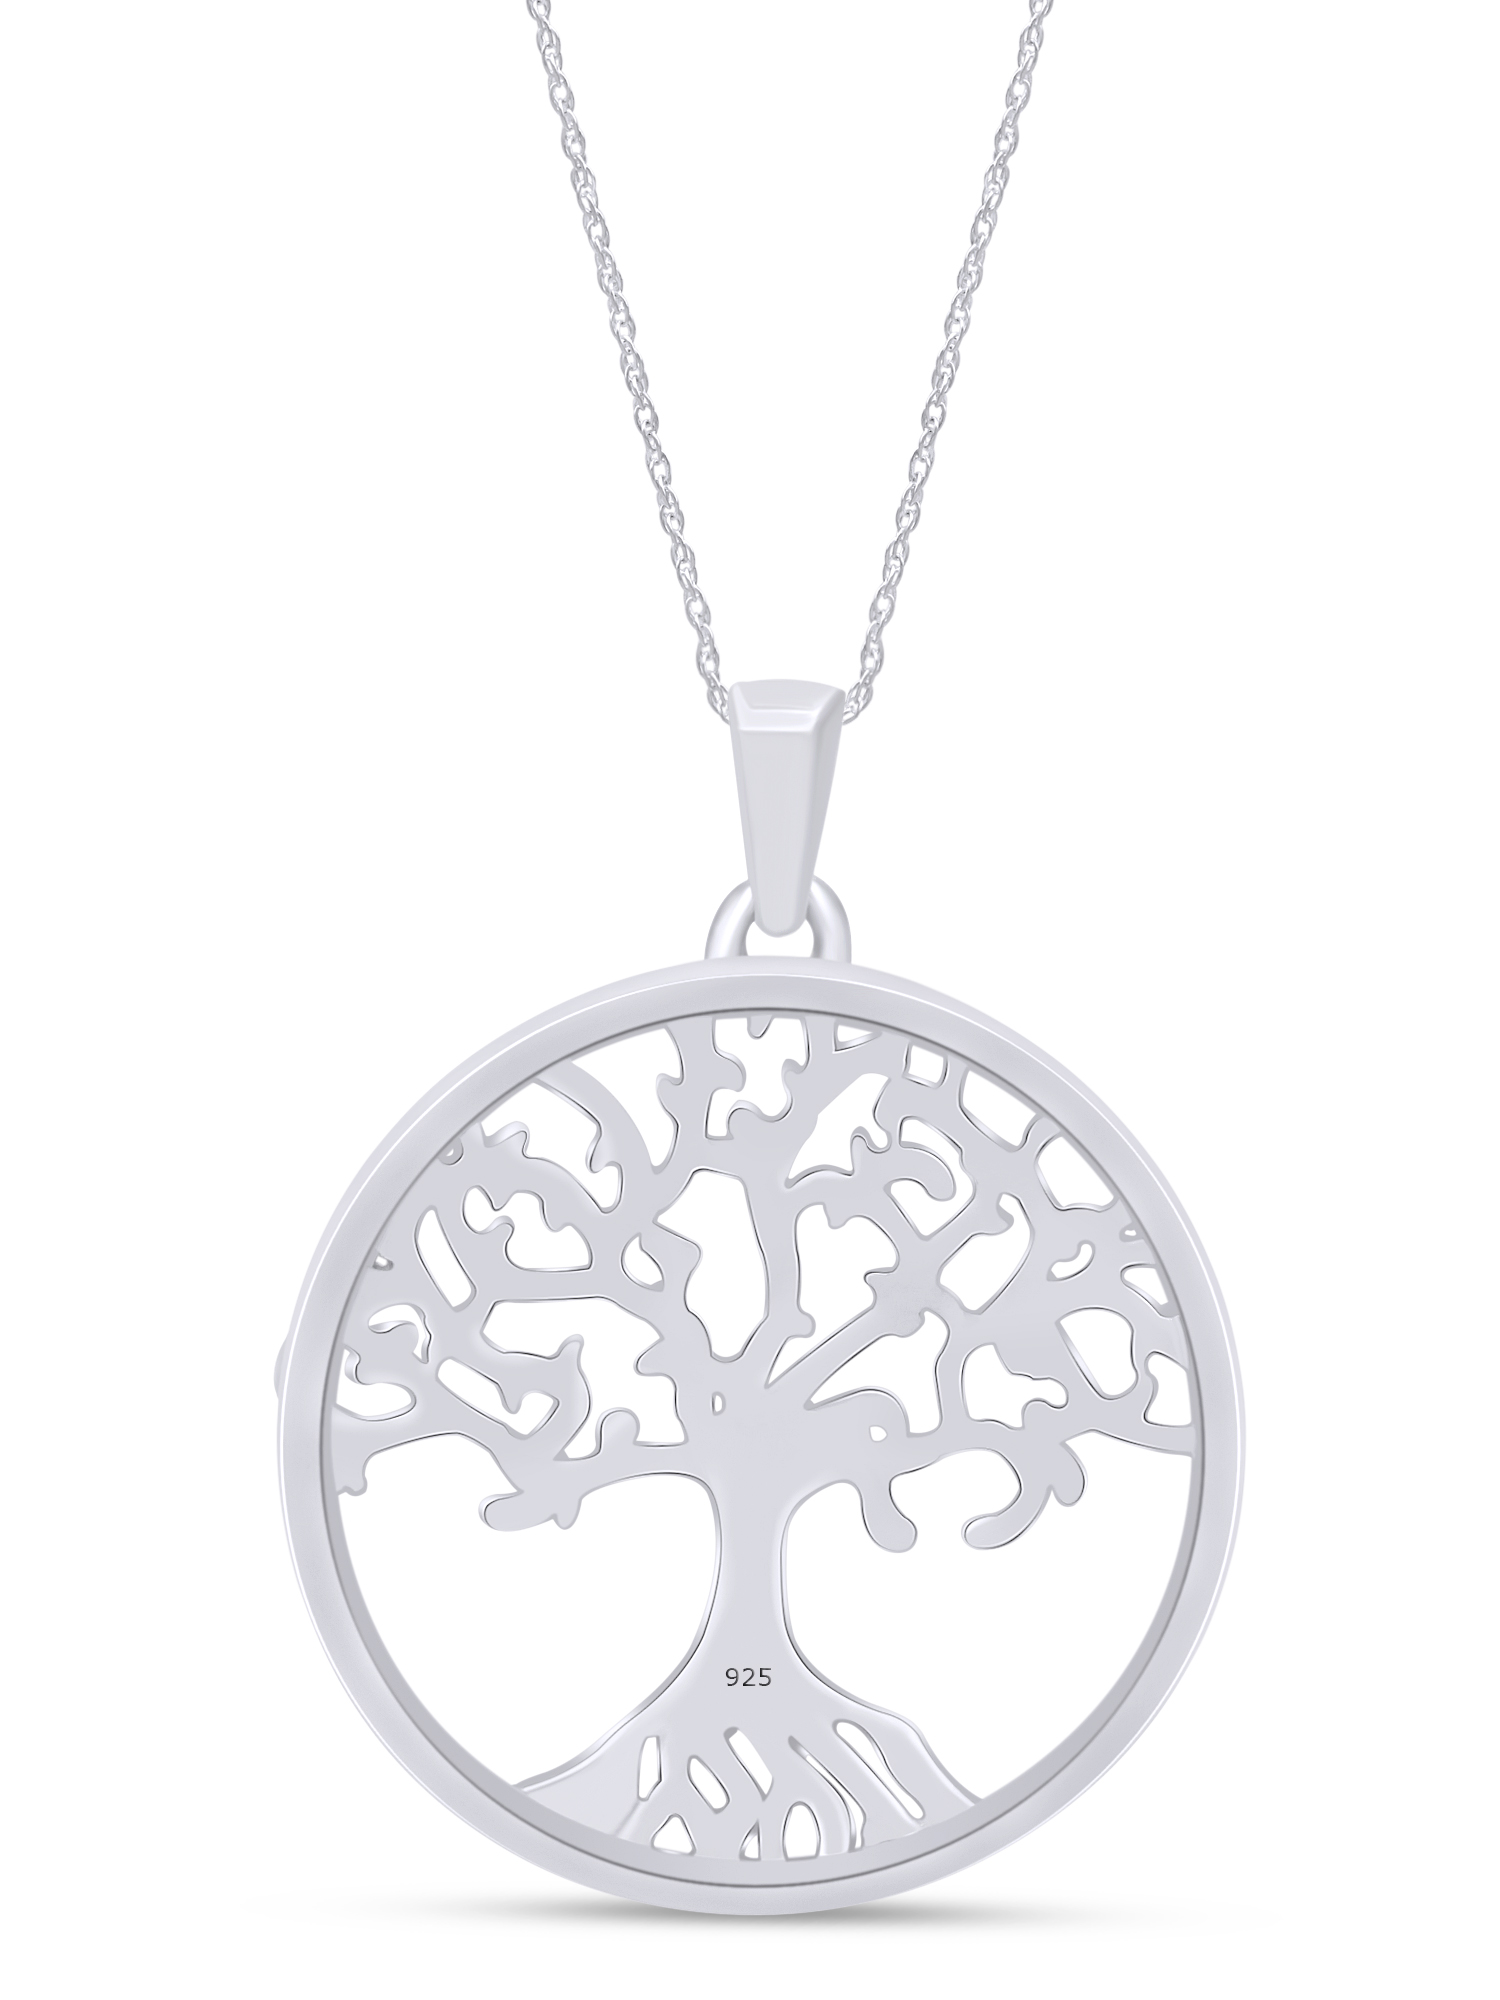 Snowy Christmas Style Charm Jewellery Gift White Tree of Life Necklace Pendant